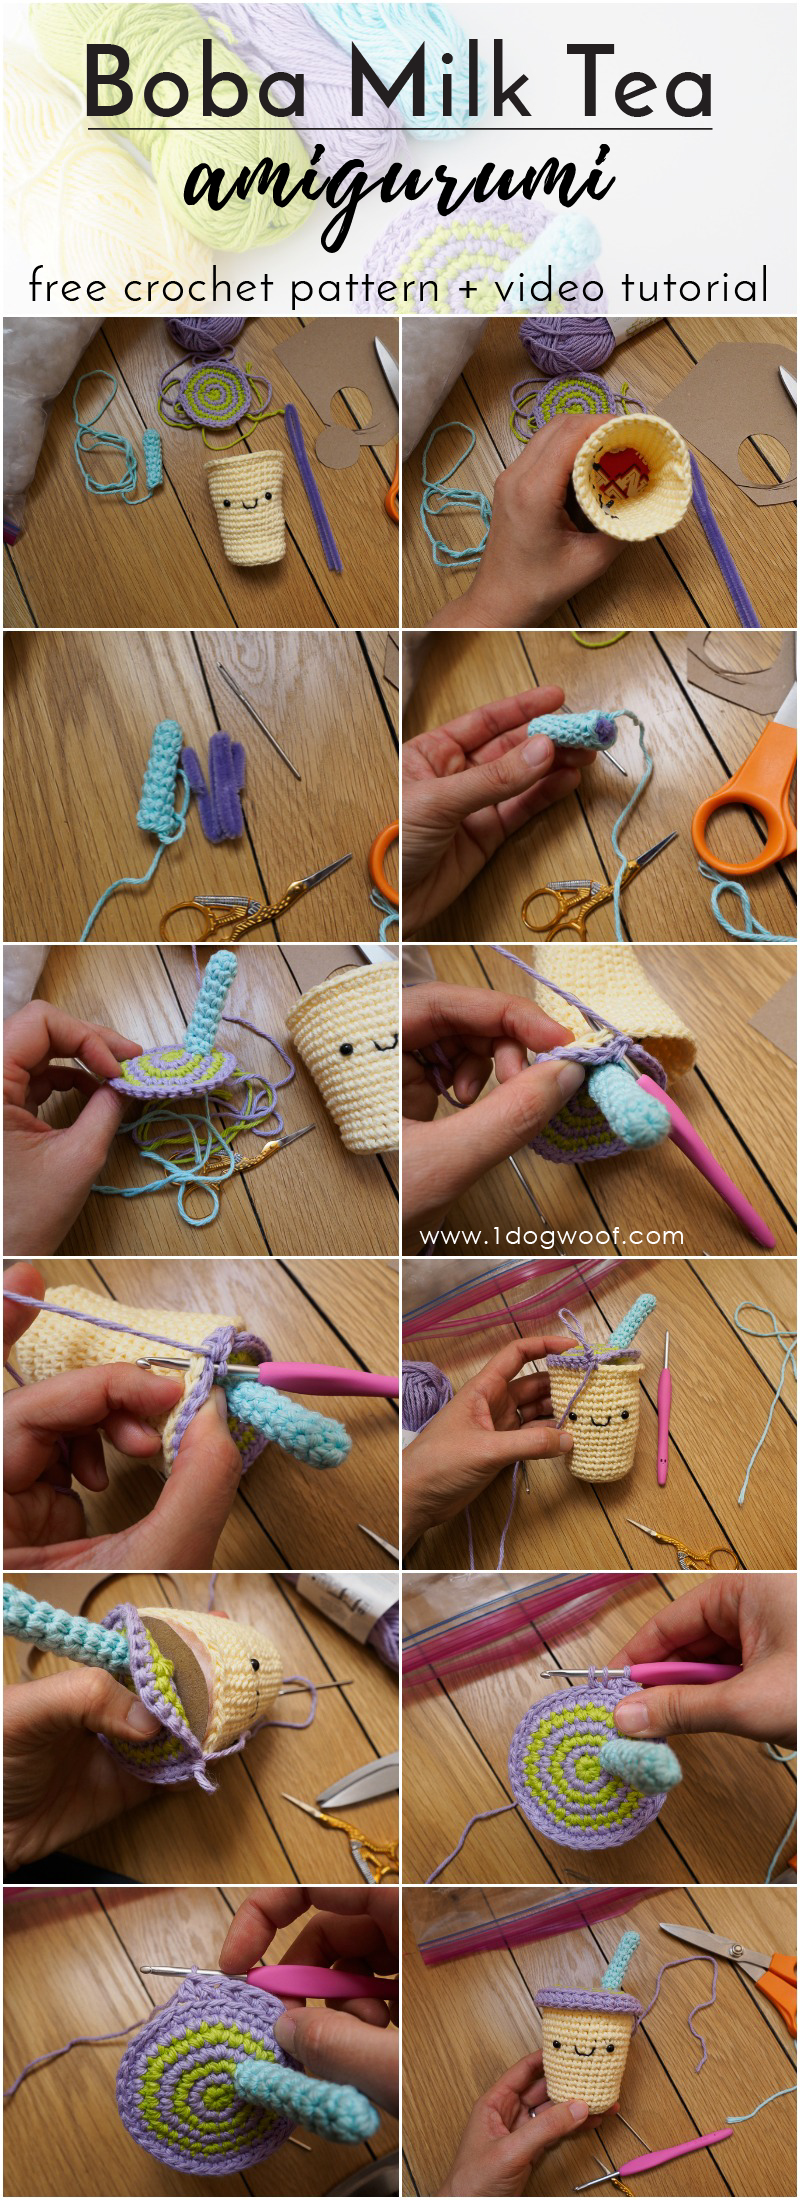 FREE crochet pattern + video tutorial for a sweet boba milk tea amigurumi! | 1dogwoof.com